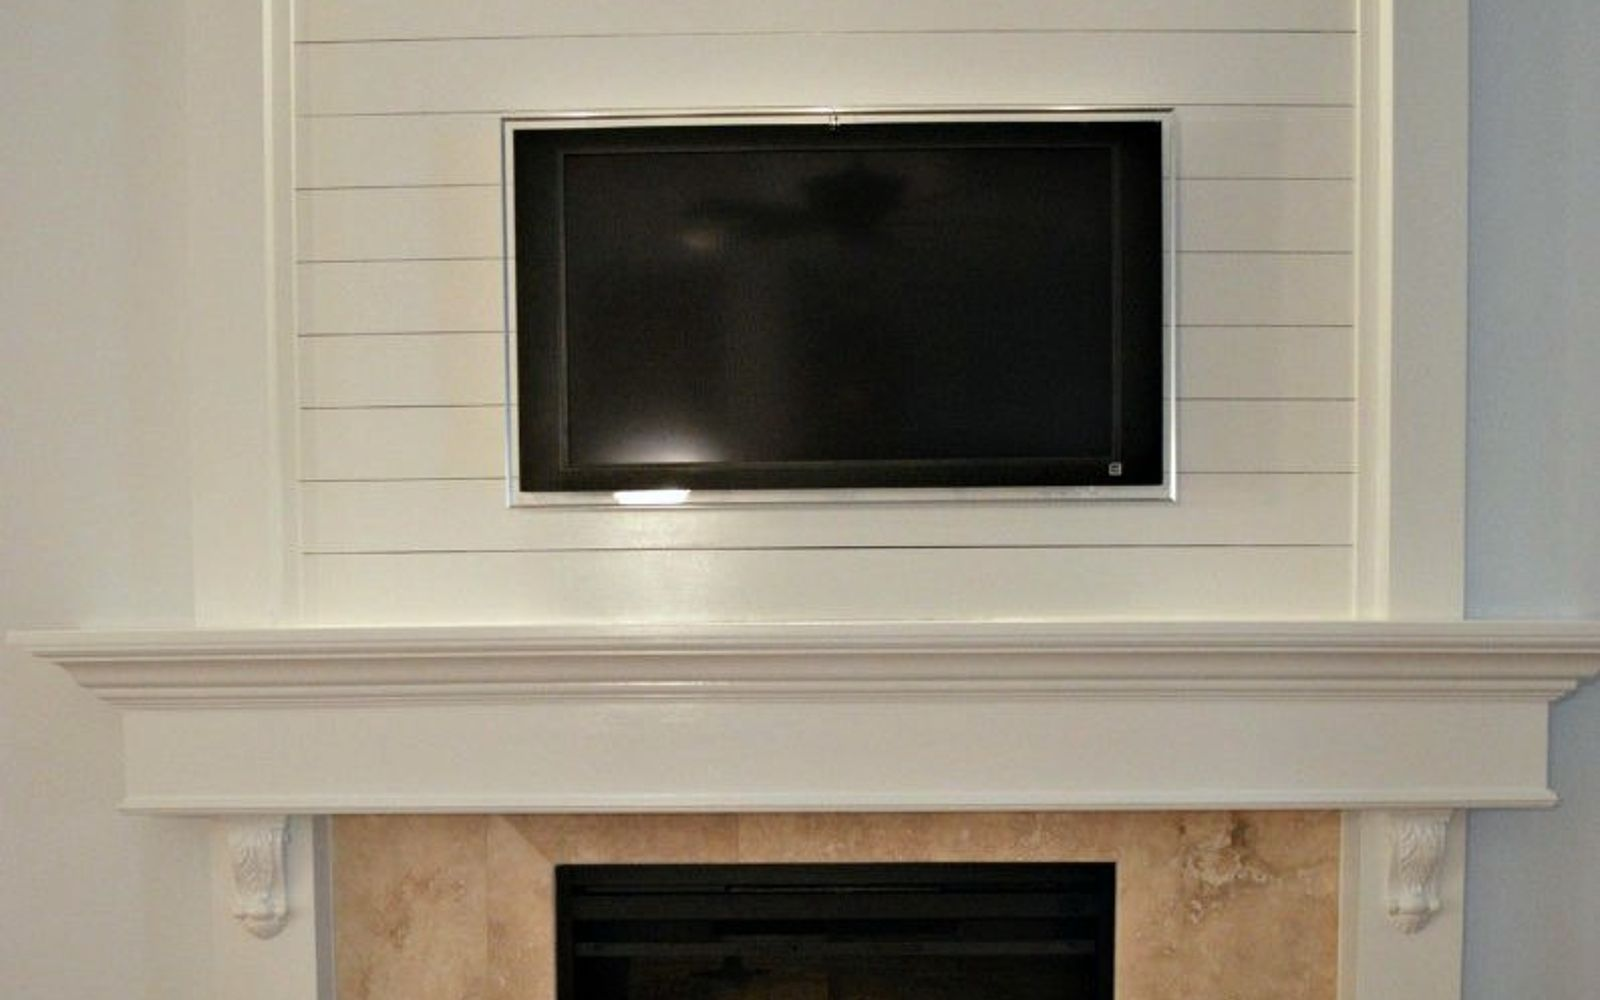 s 12 shiplap ideas that are hot right now, home decor, wall decor, Add shiplap detailing around your fireplace